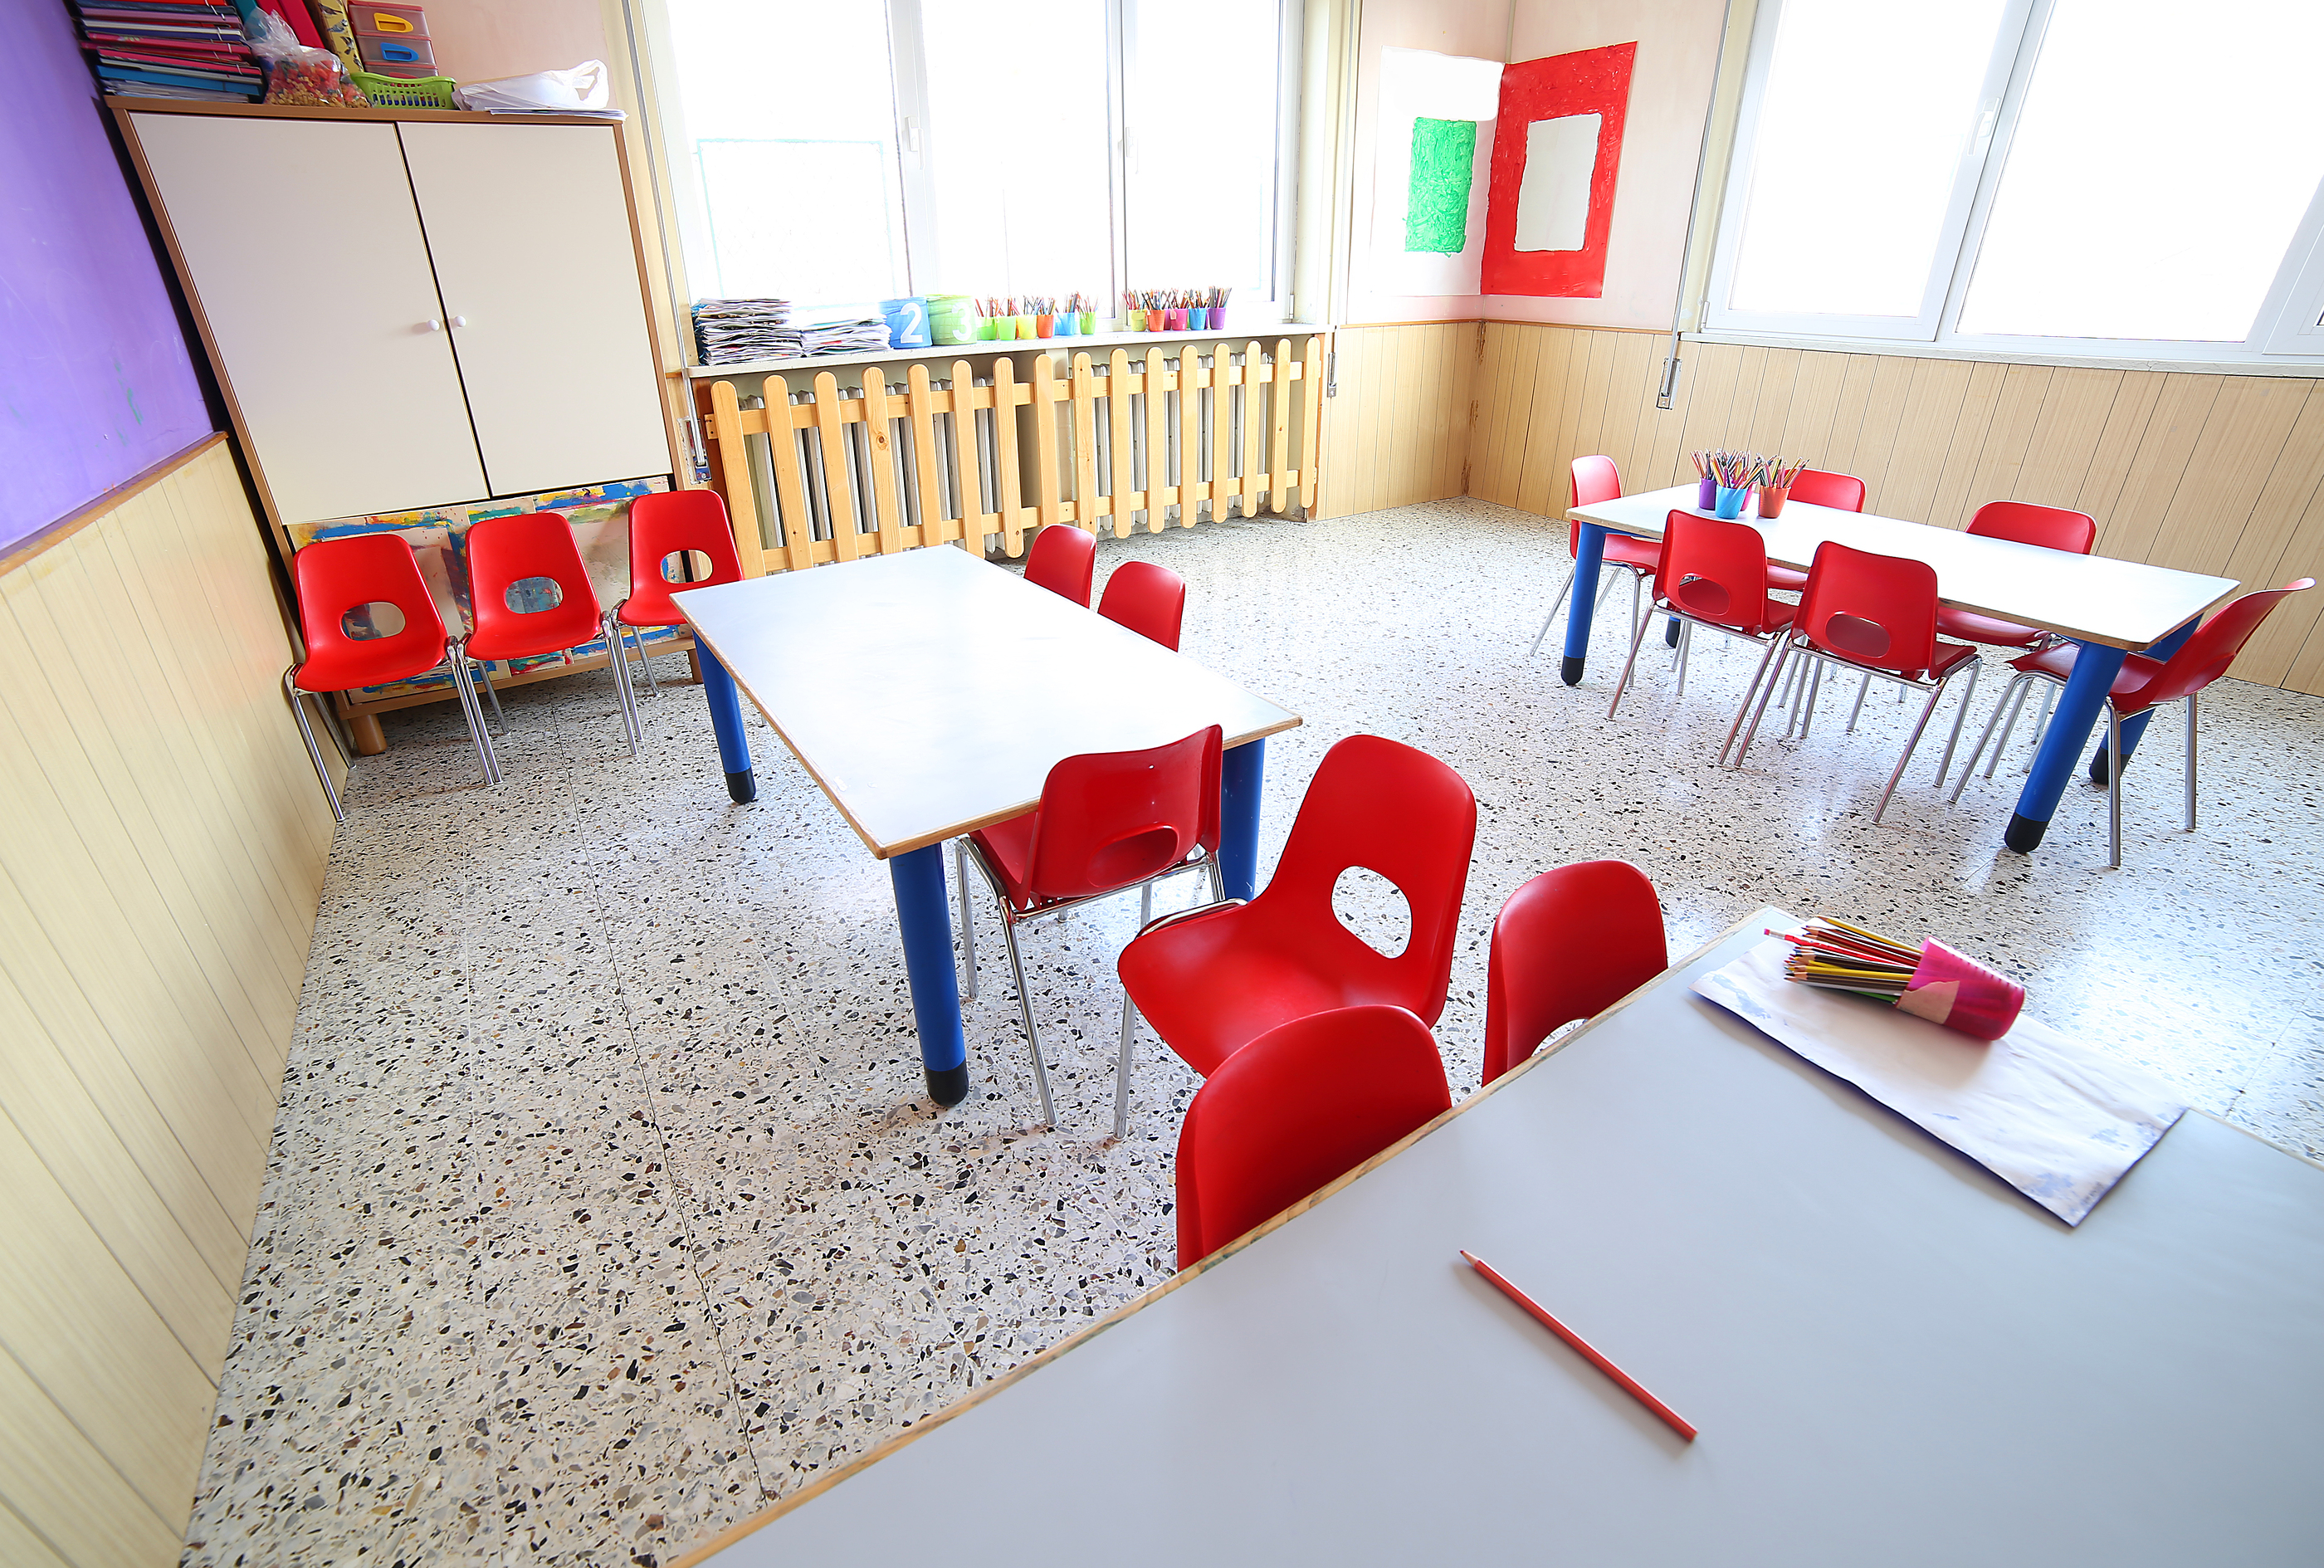 Daycare Setups Involves Many Things Including Buying Your Necessary Classroom Desks And Chairs